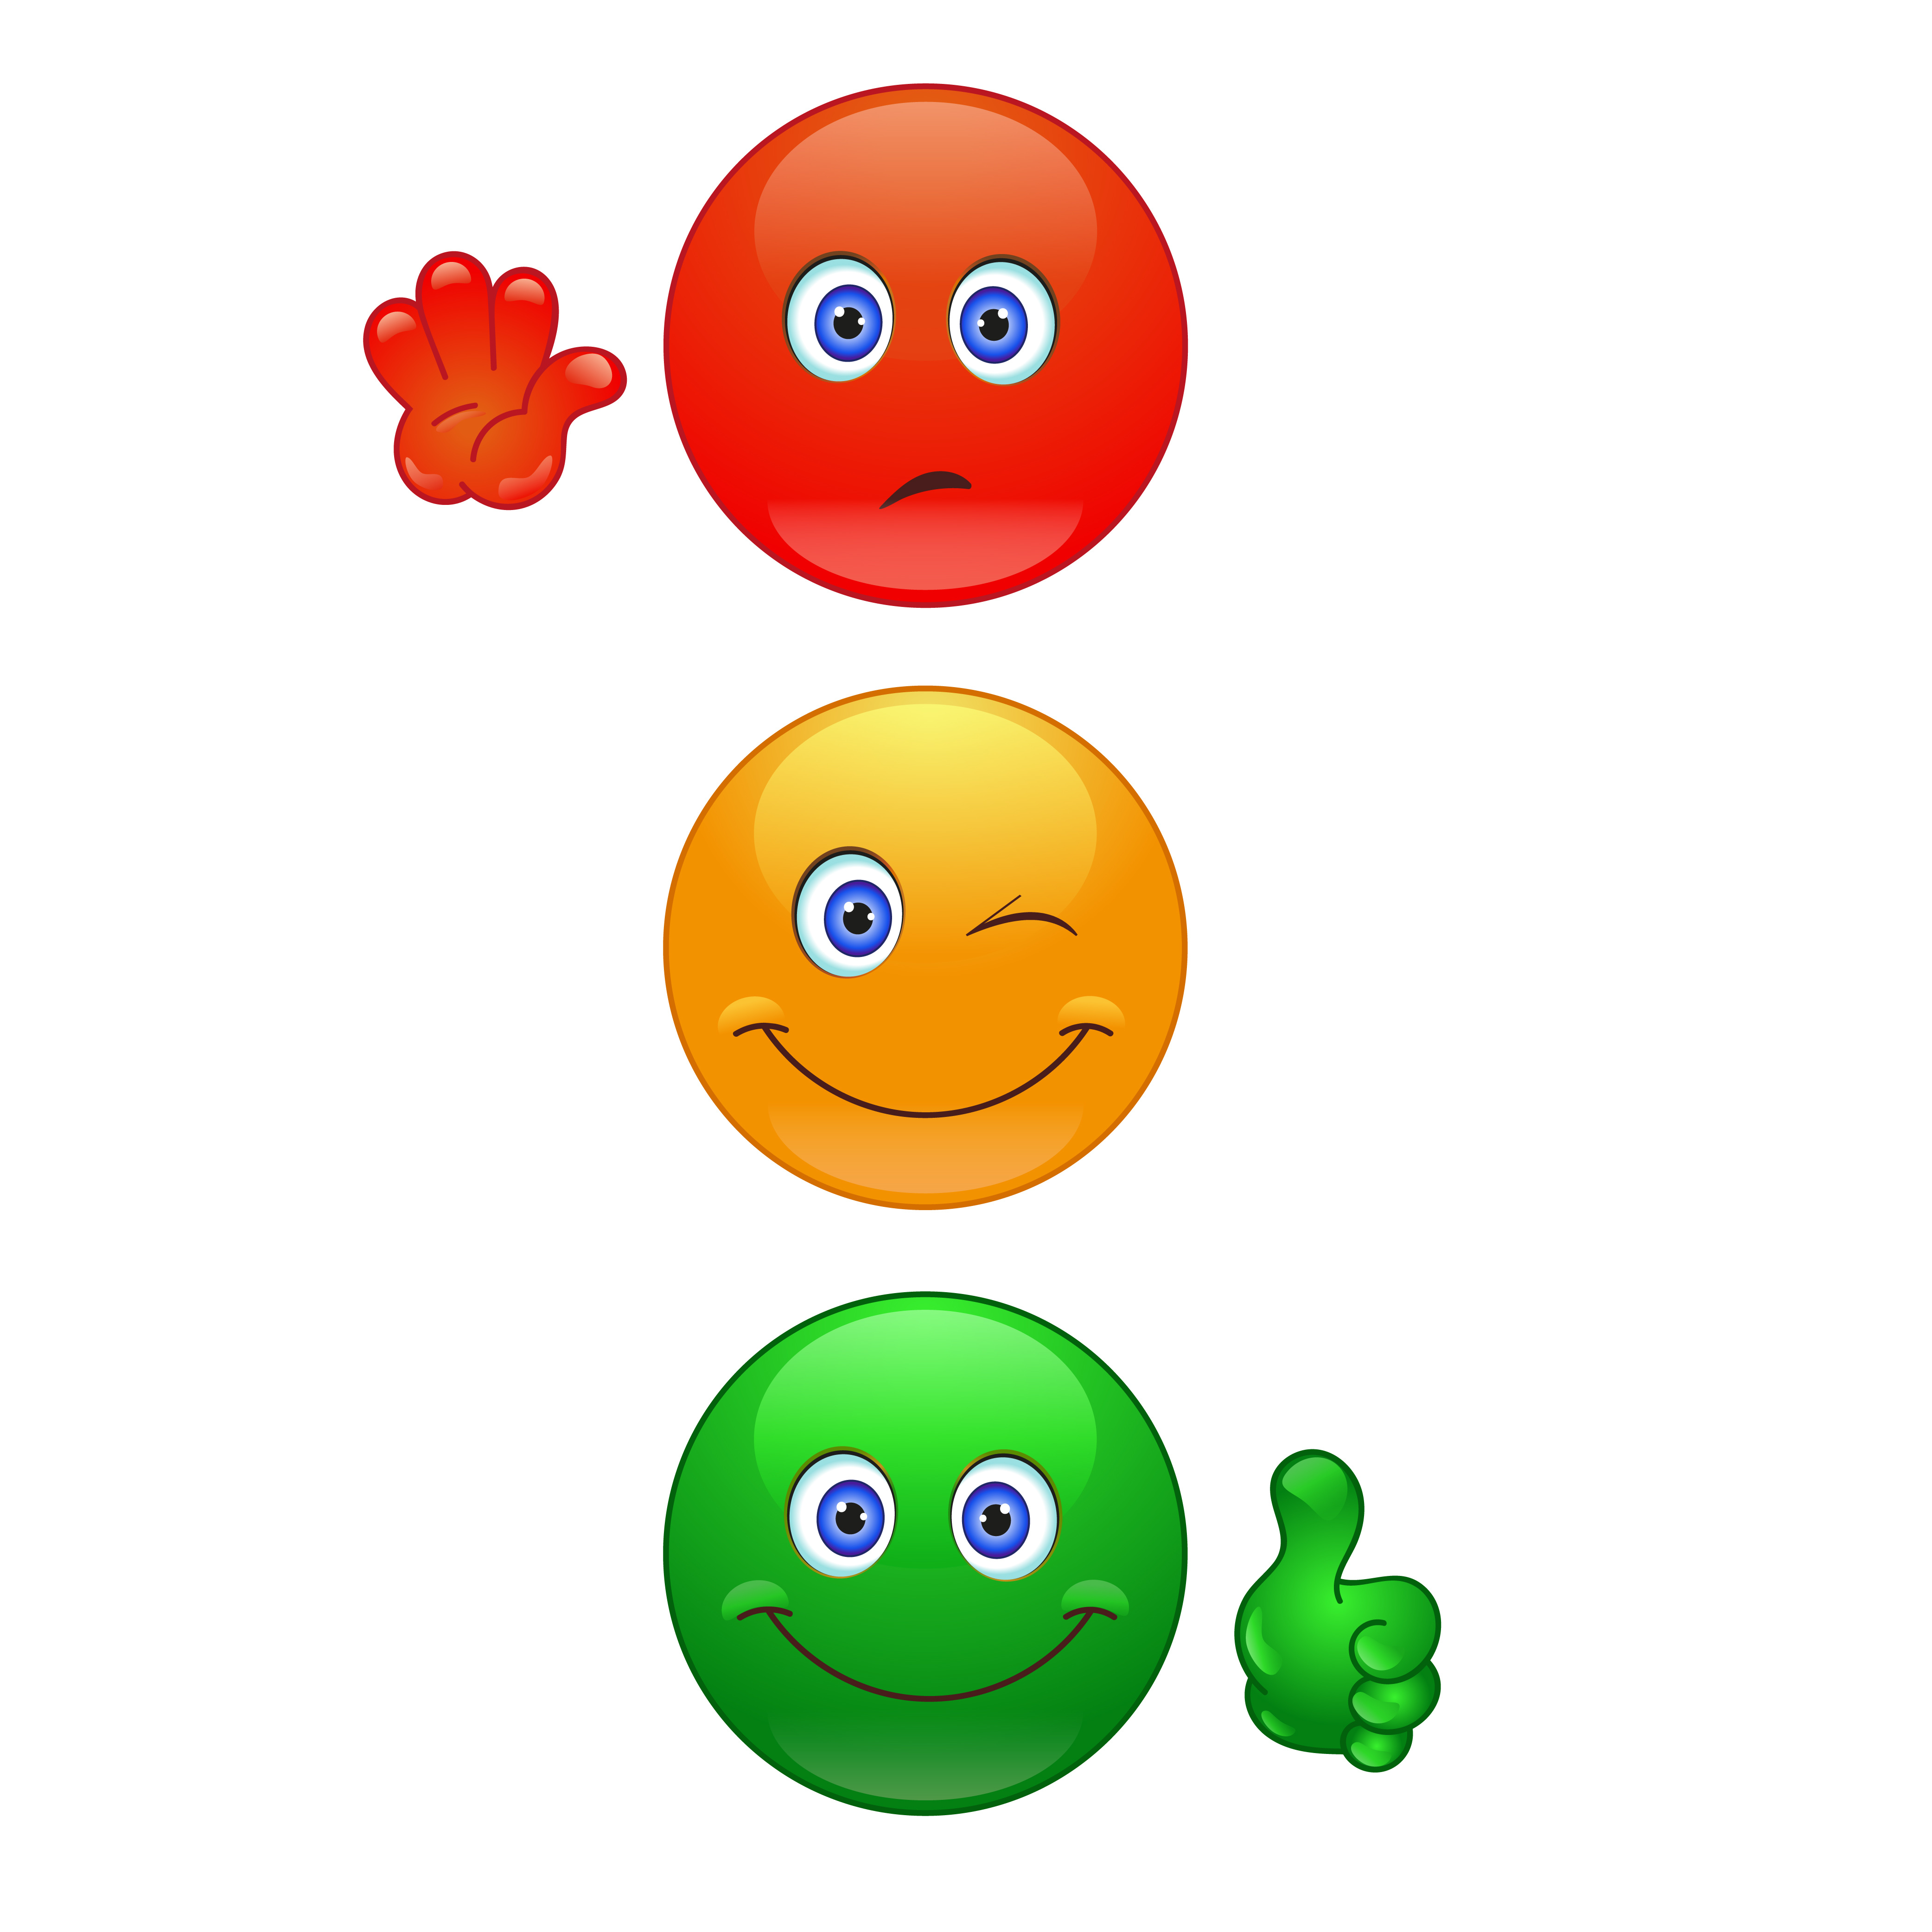 cartoon traffic light clipart best free animated smiley face clip art Winking Smiley Face Clip Art